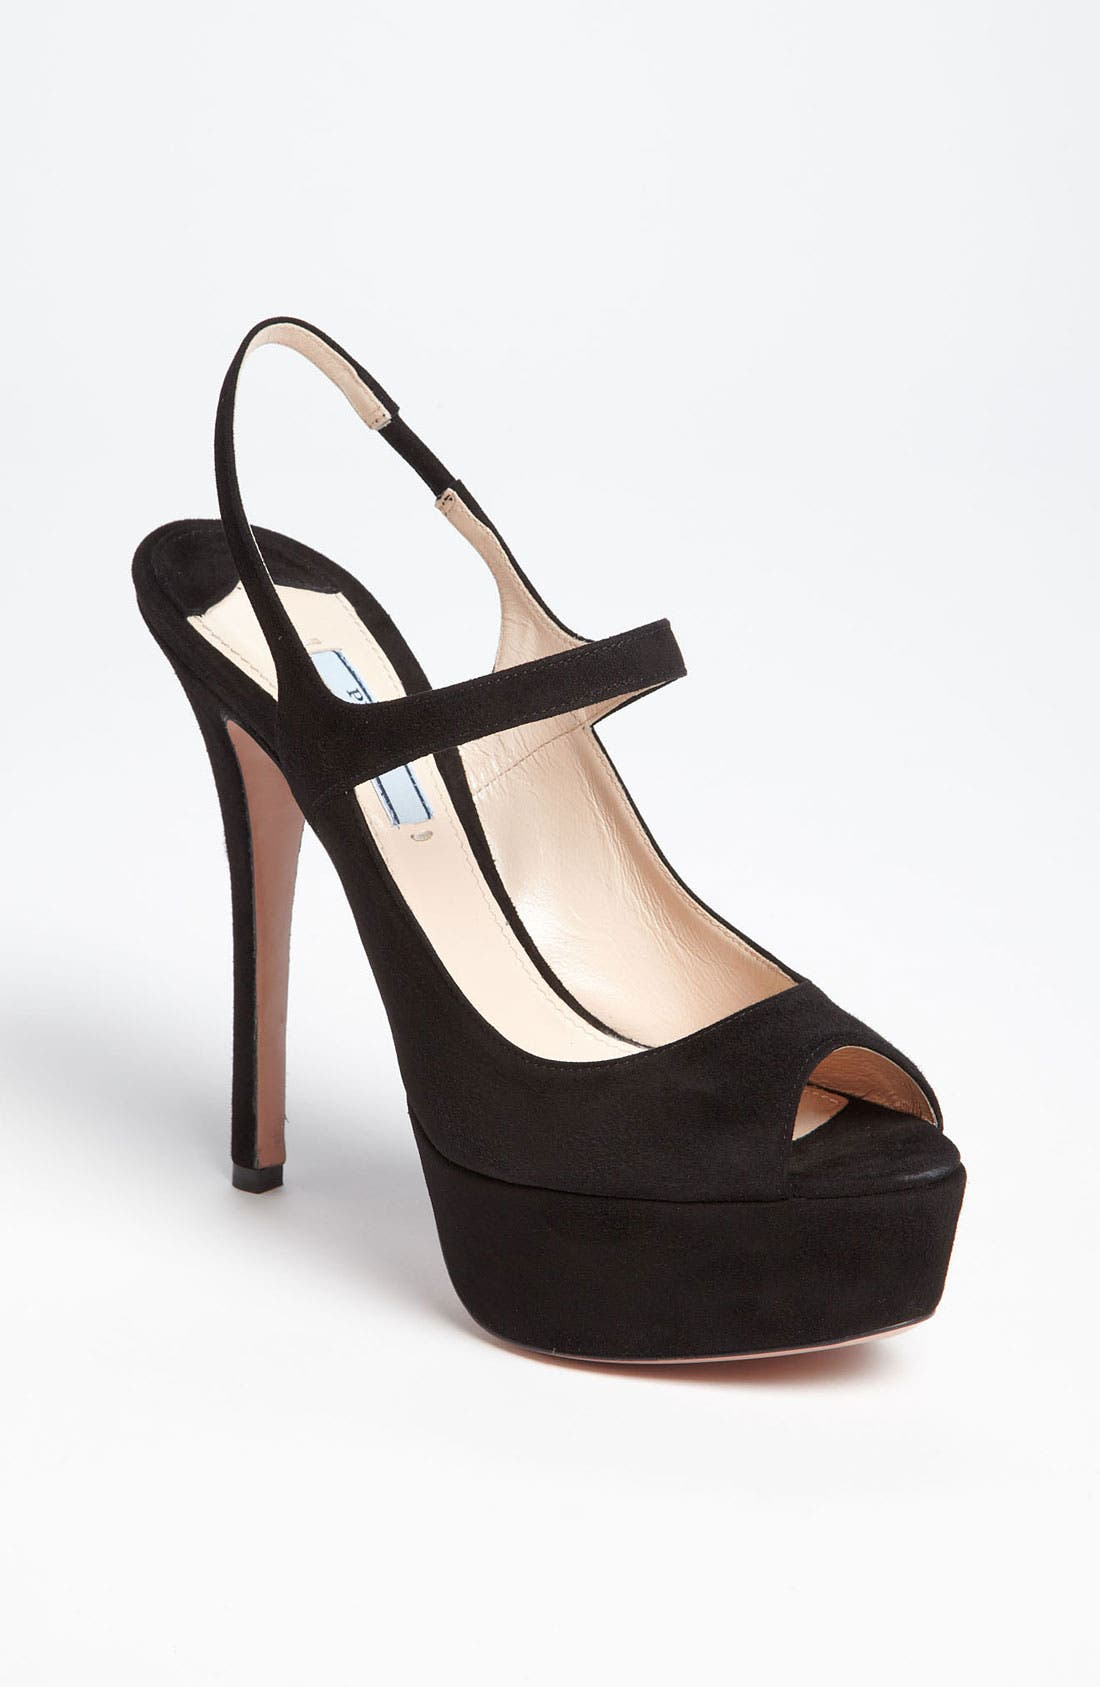 Alternate Image 1 Selected - Prada Peep Toe Slingback Sandal